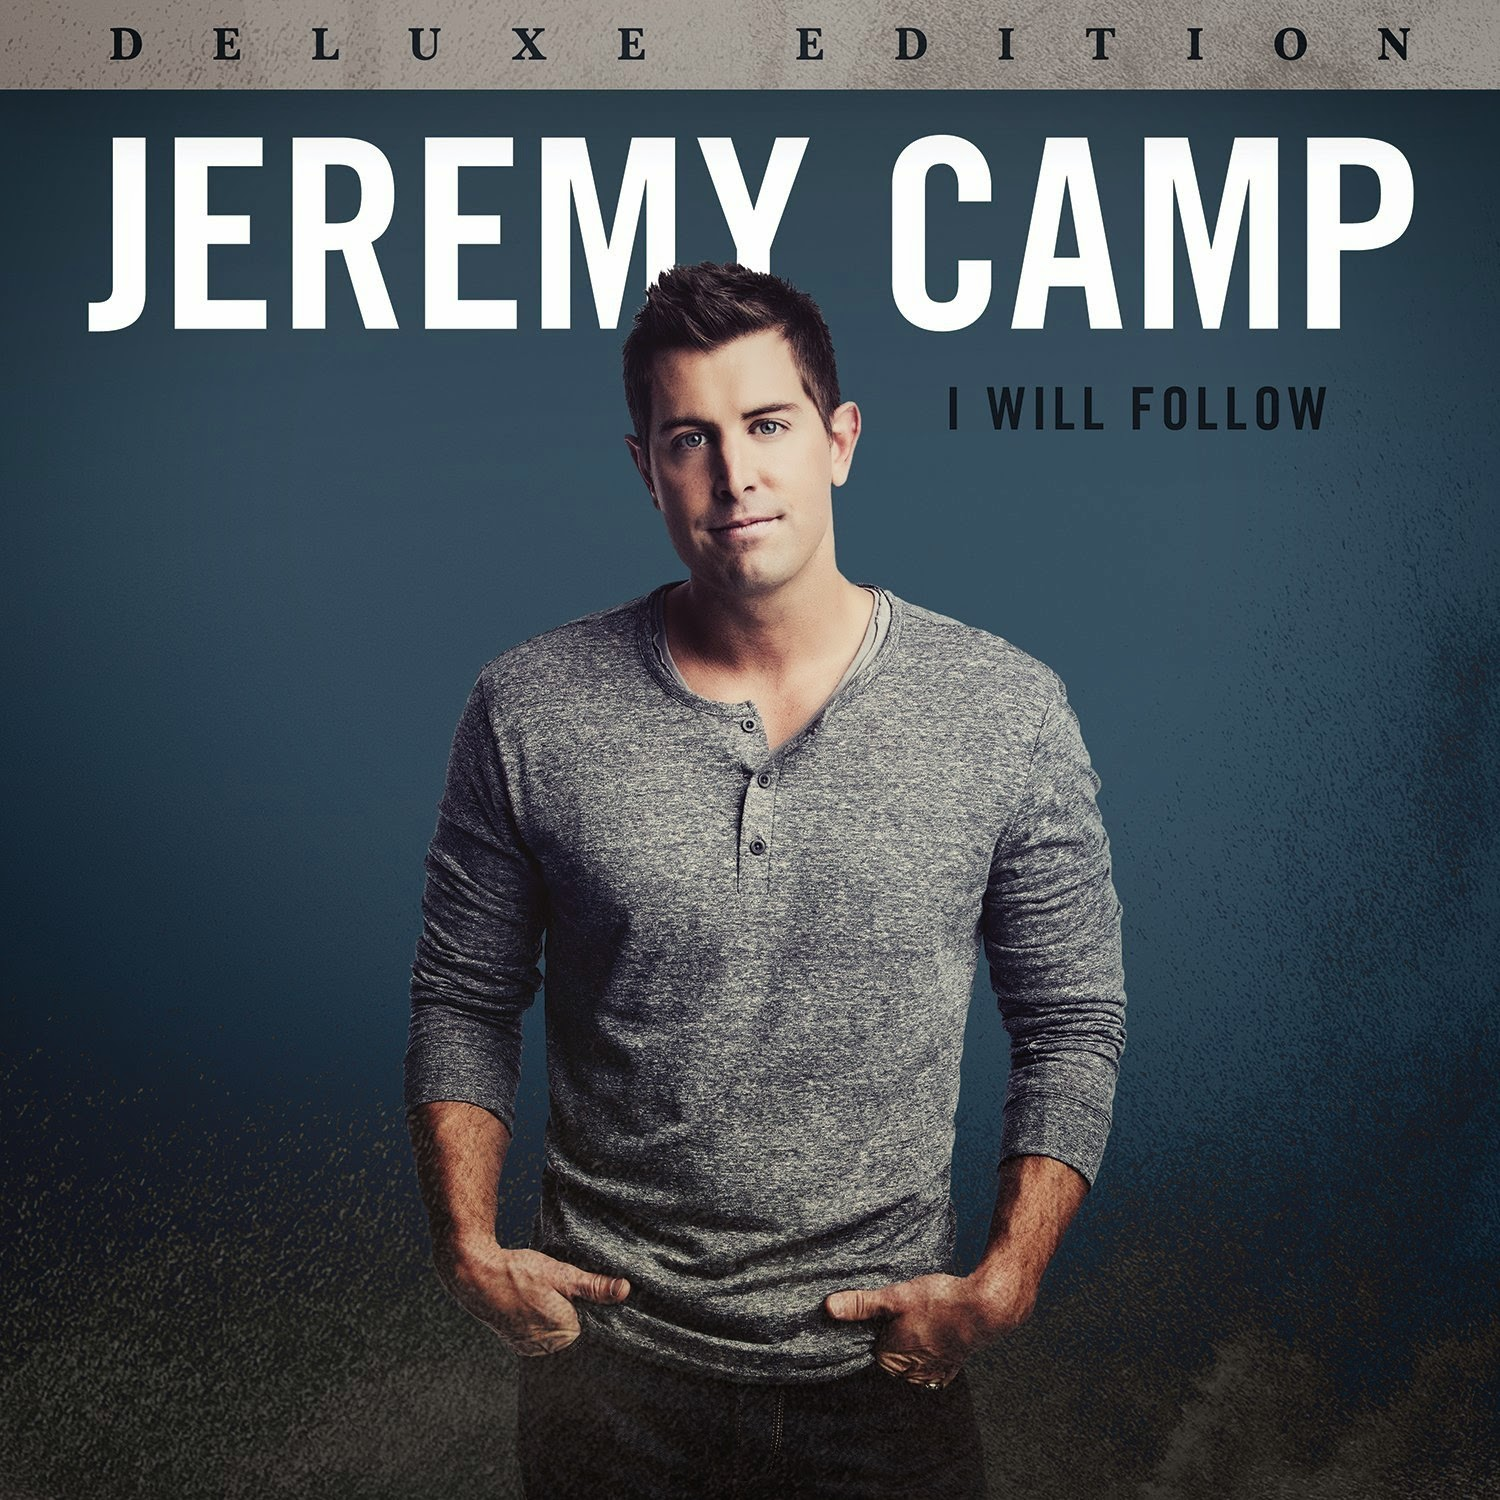 Jeremy Camp - I Will Follow (Deluxe Edition) 2015 English Christian Album Download